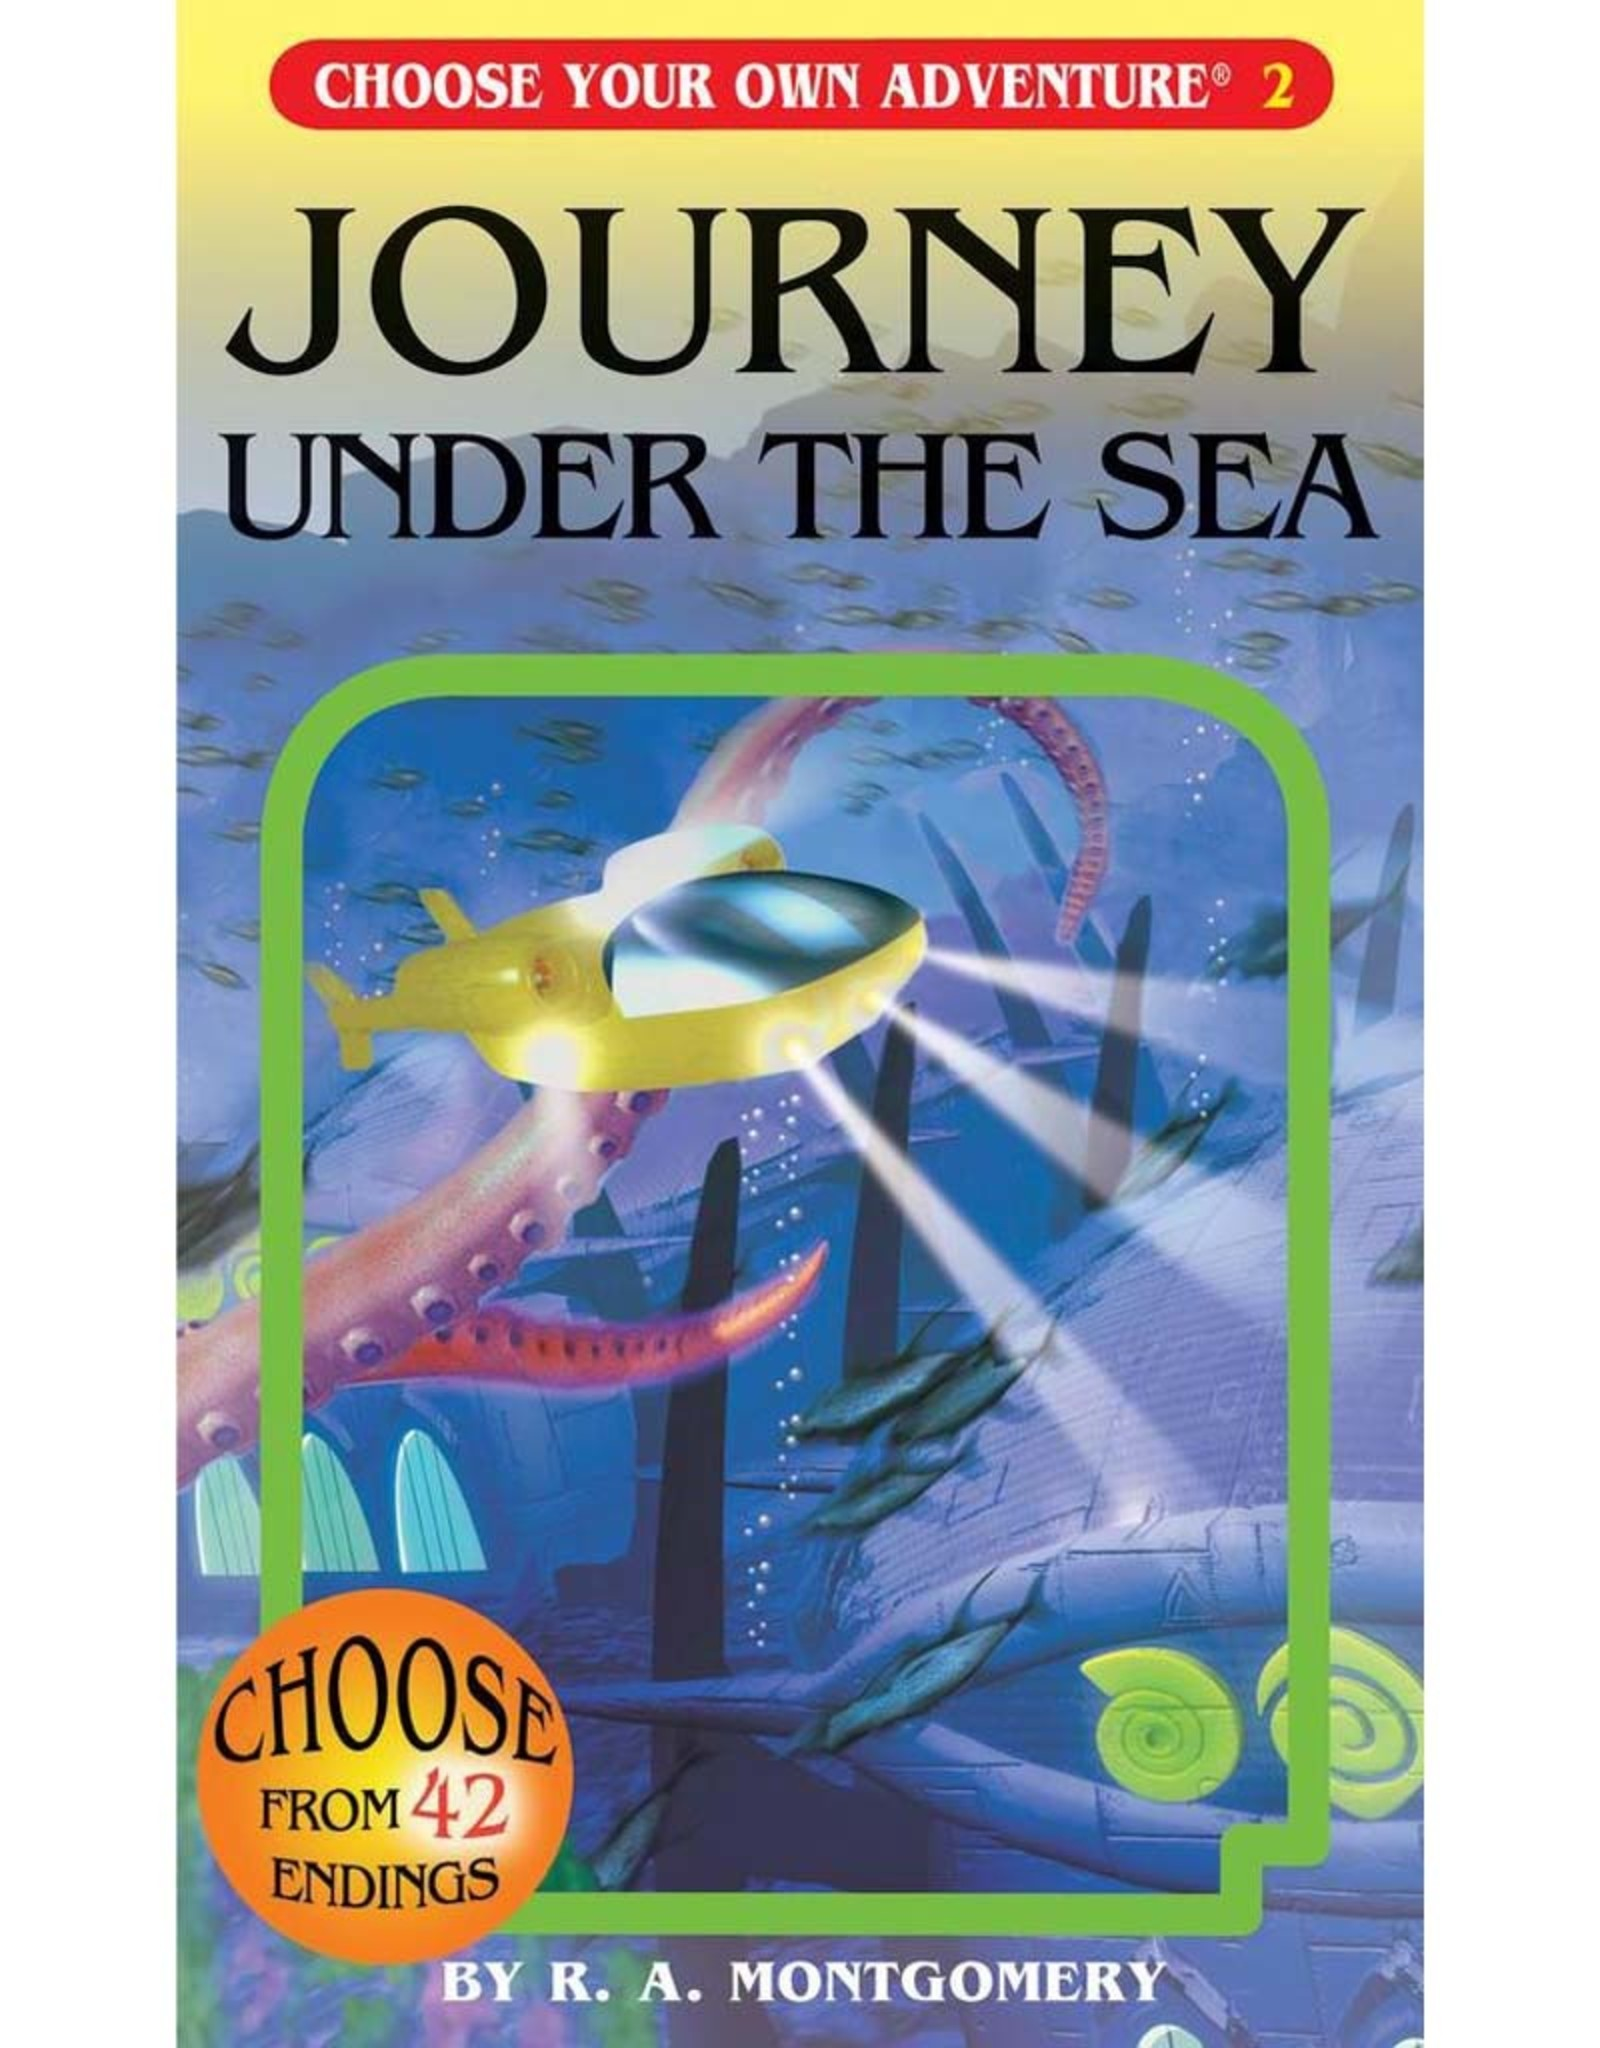 ChooseCo CYOA #2 Journey Under The Sea